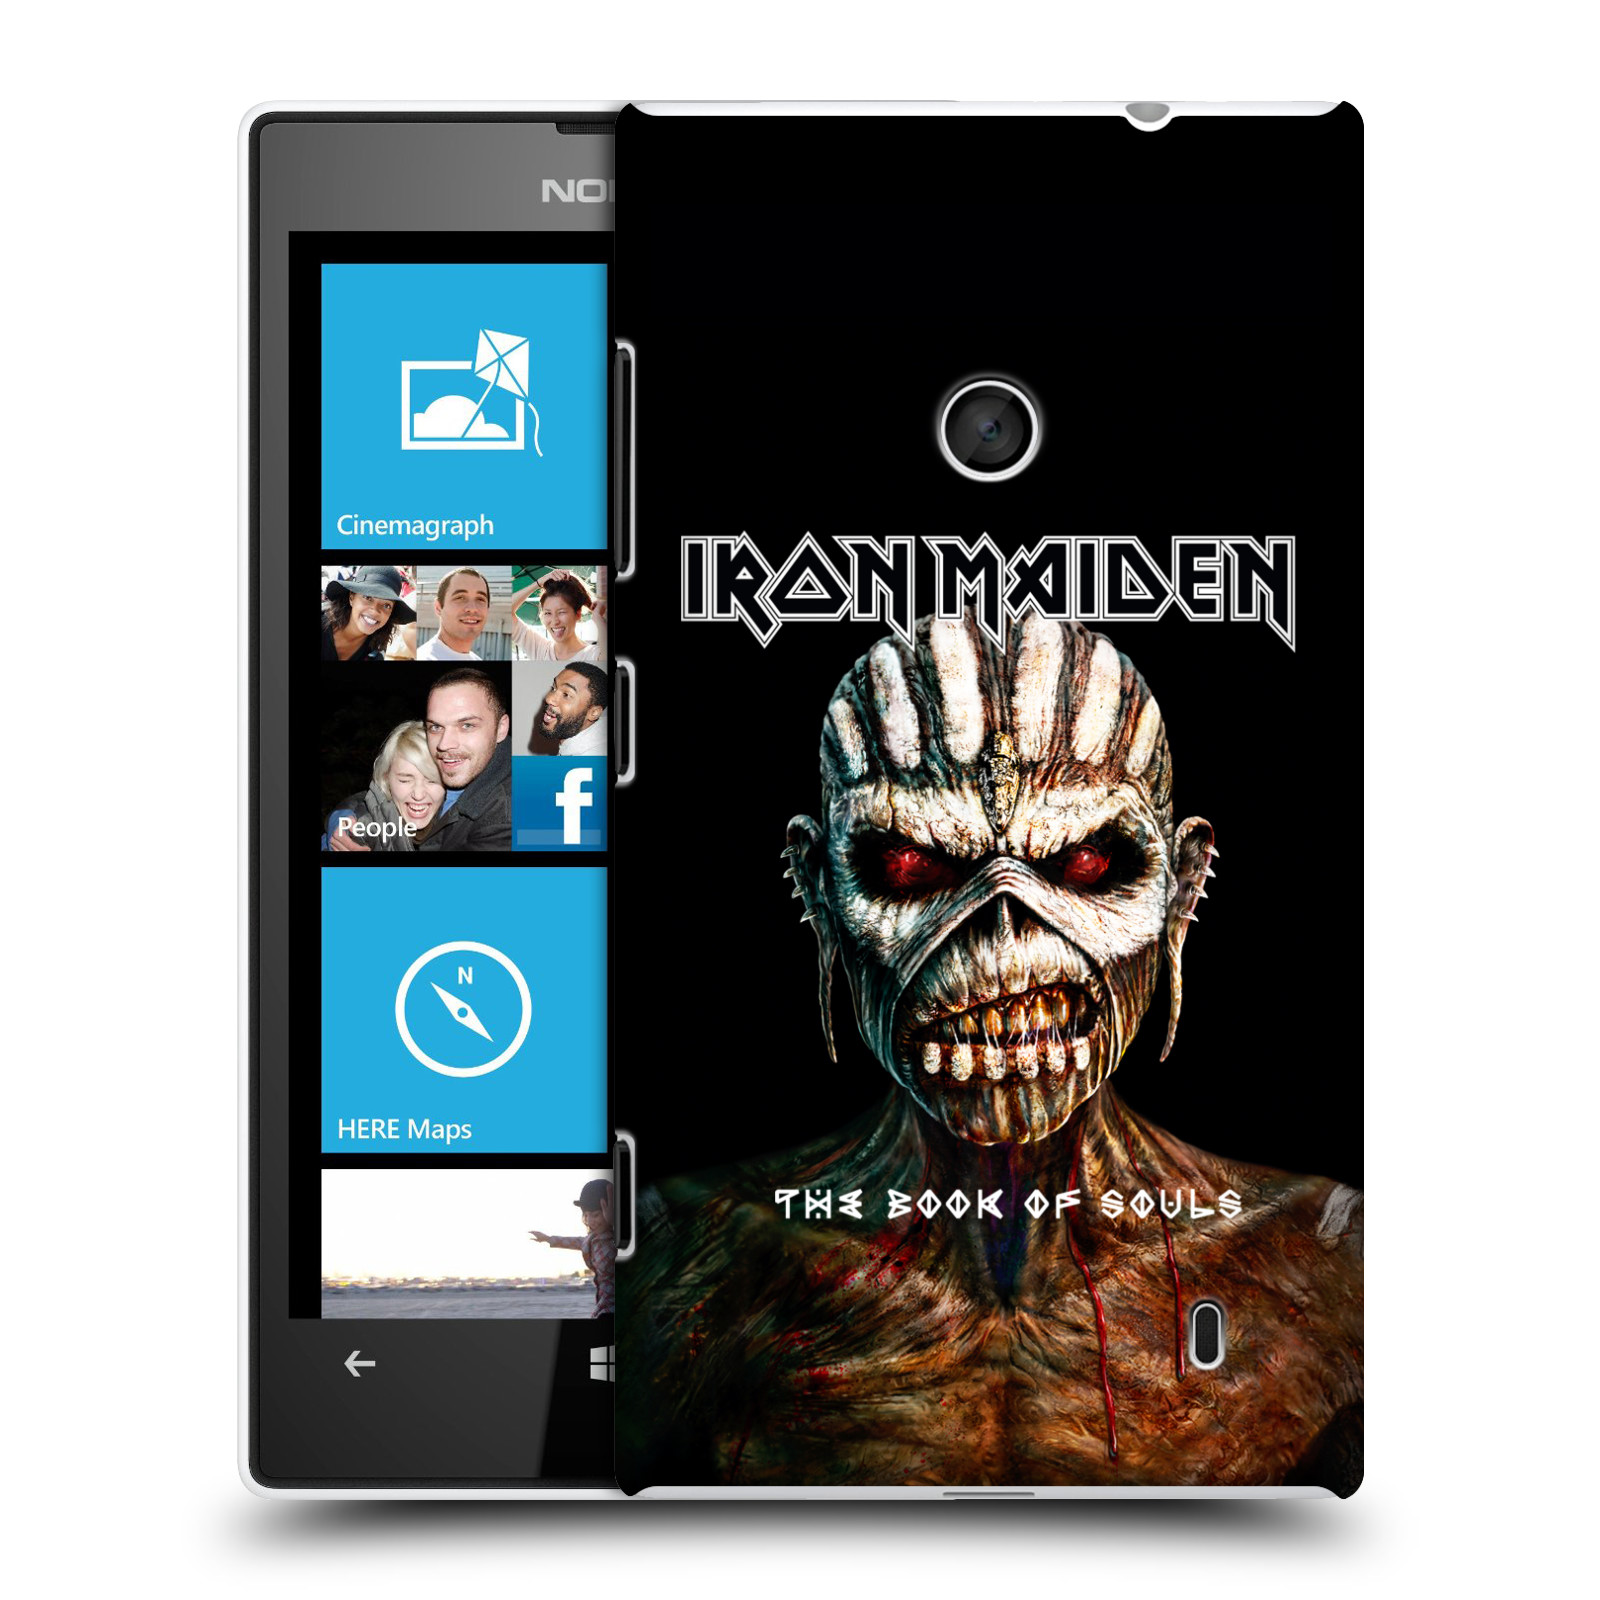 Plastové pouzdro na mobil Nokia Lumia 520 HEAD CASE - Iron Maiden - The Book Of Souls